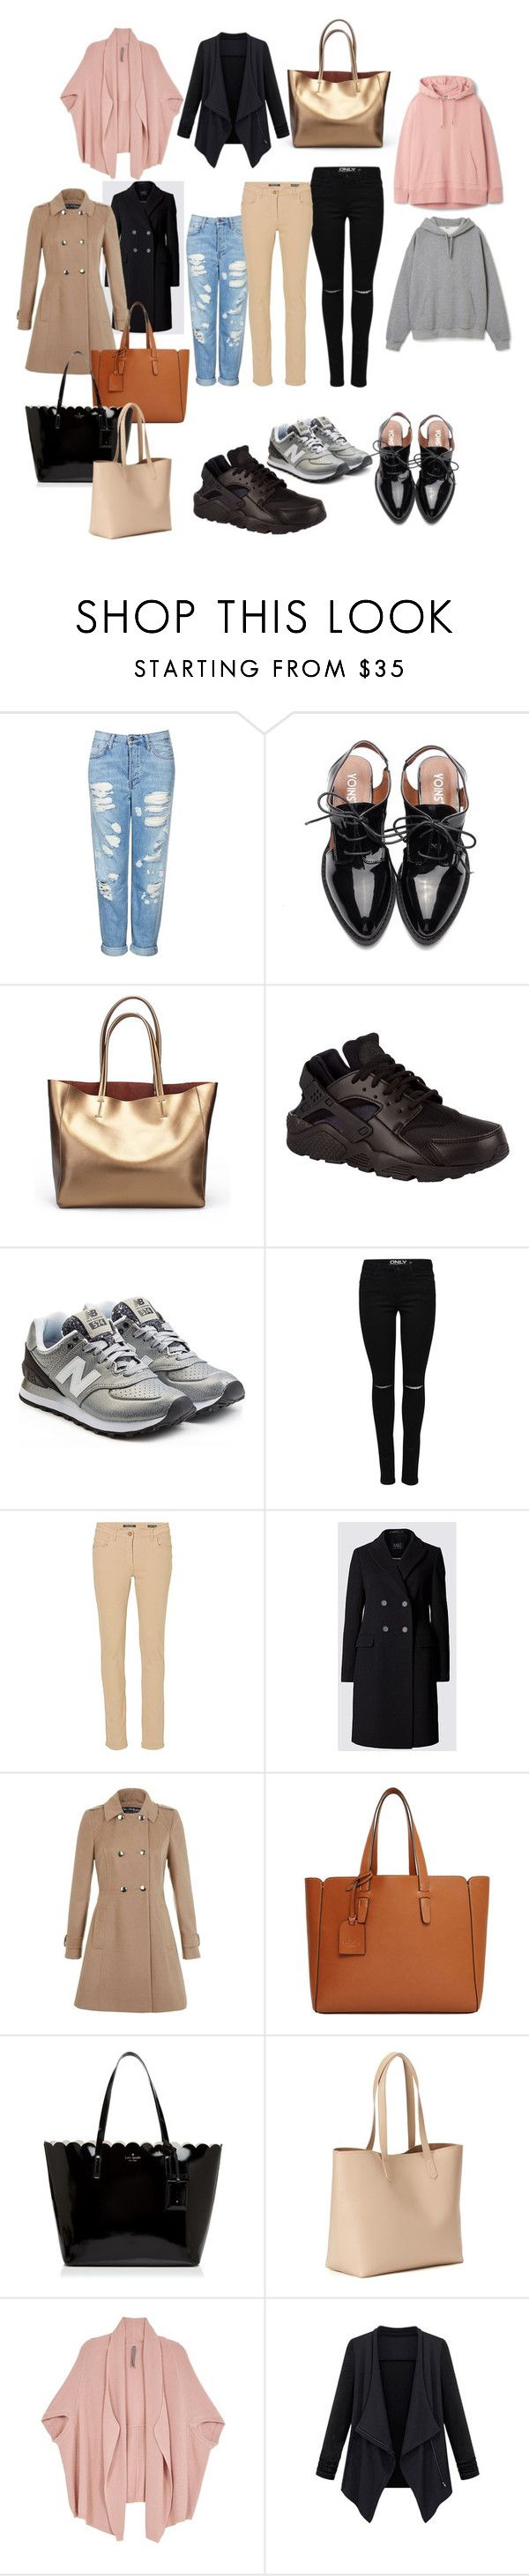 """""""Outfit"""" by marialevillega on Polyvore featuring moda, Topshop, NIKE, New Balance, Betty Barclay, Miss Selfridge, Violeta by Mango, Kate Spade, Old Navy y Melissa McCarthy Seven7"""